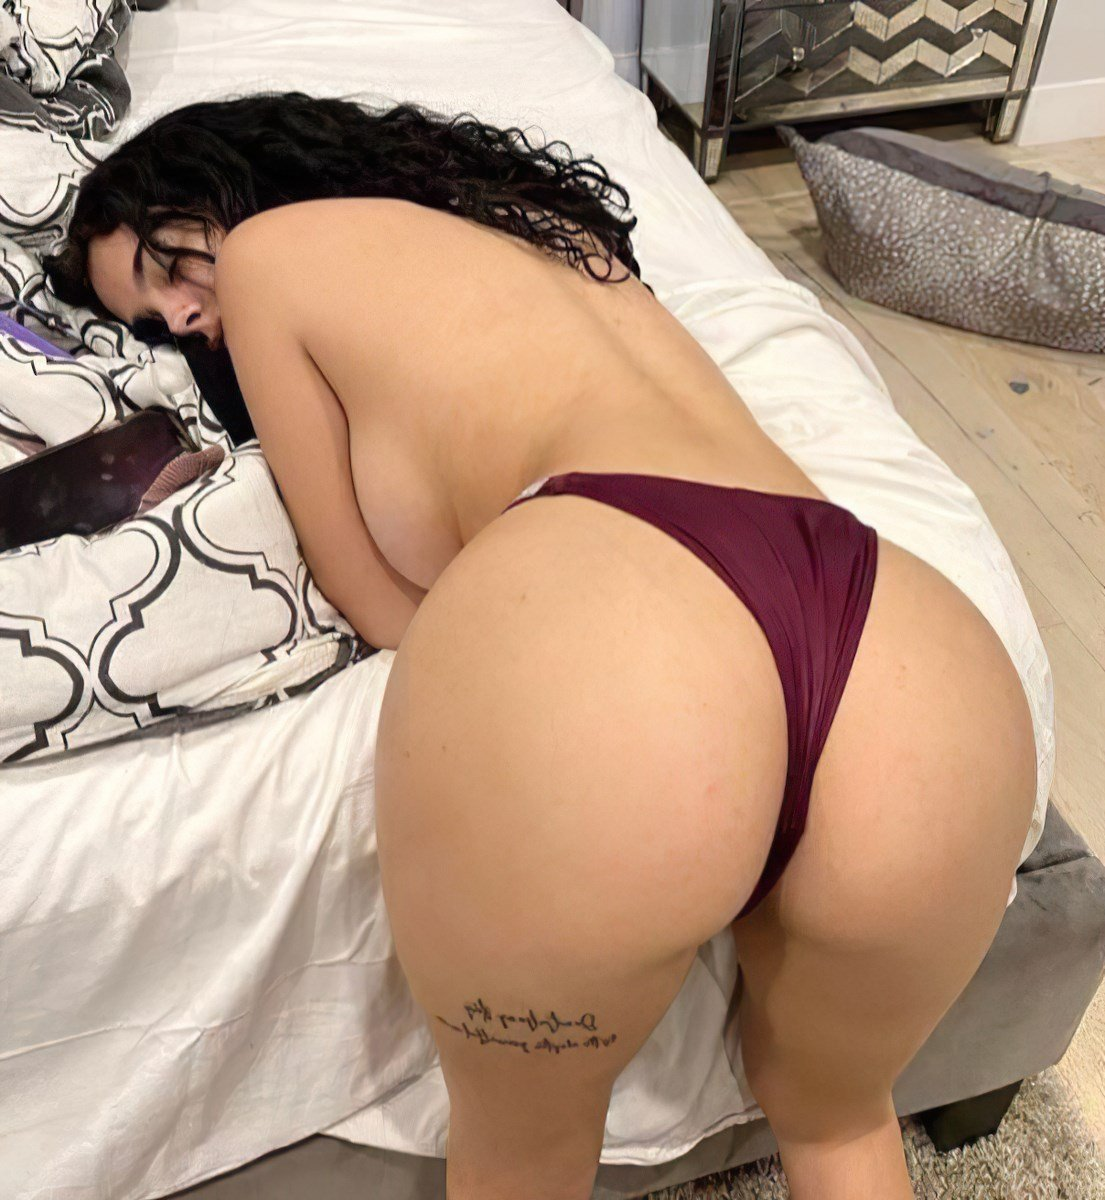 Malu Trevejo topless nude big ass bent over on bed - Malu Trevejo Nude In The Shower OnlyFans Leaked Video